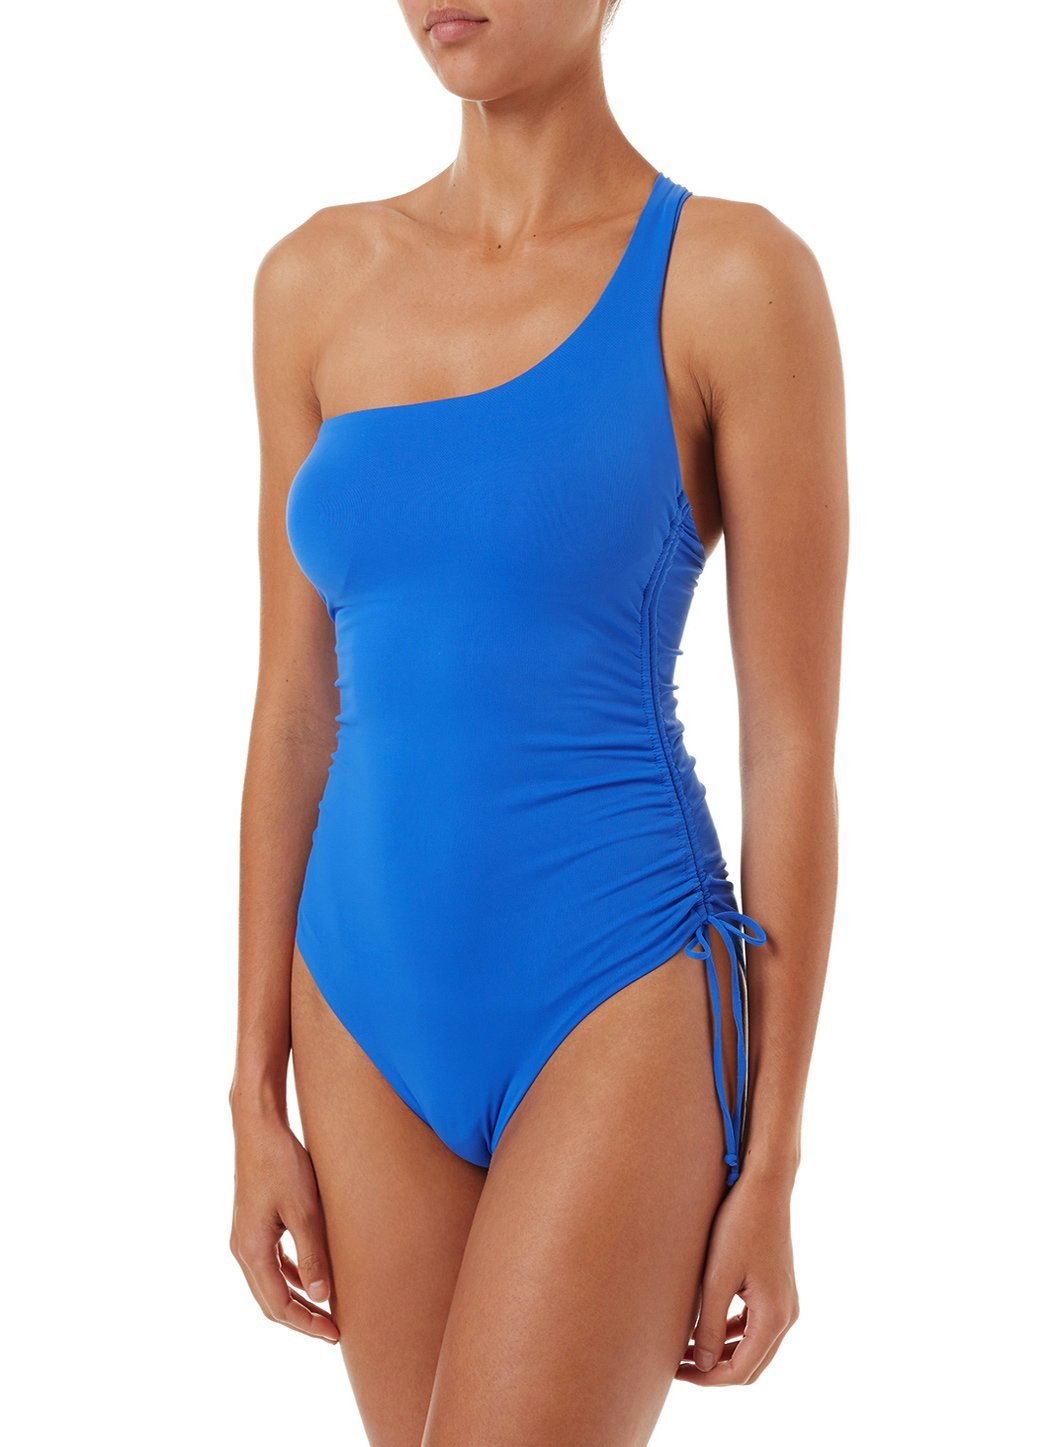 polynesia cobalt oneshoulder ruched onepiece swimsuit 2019 F